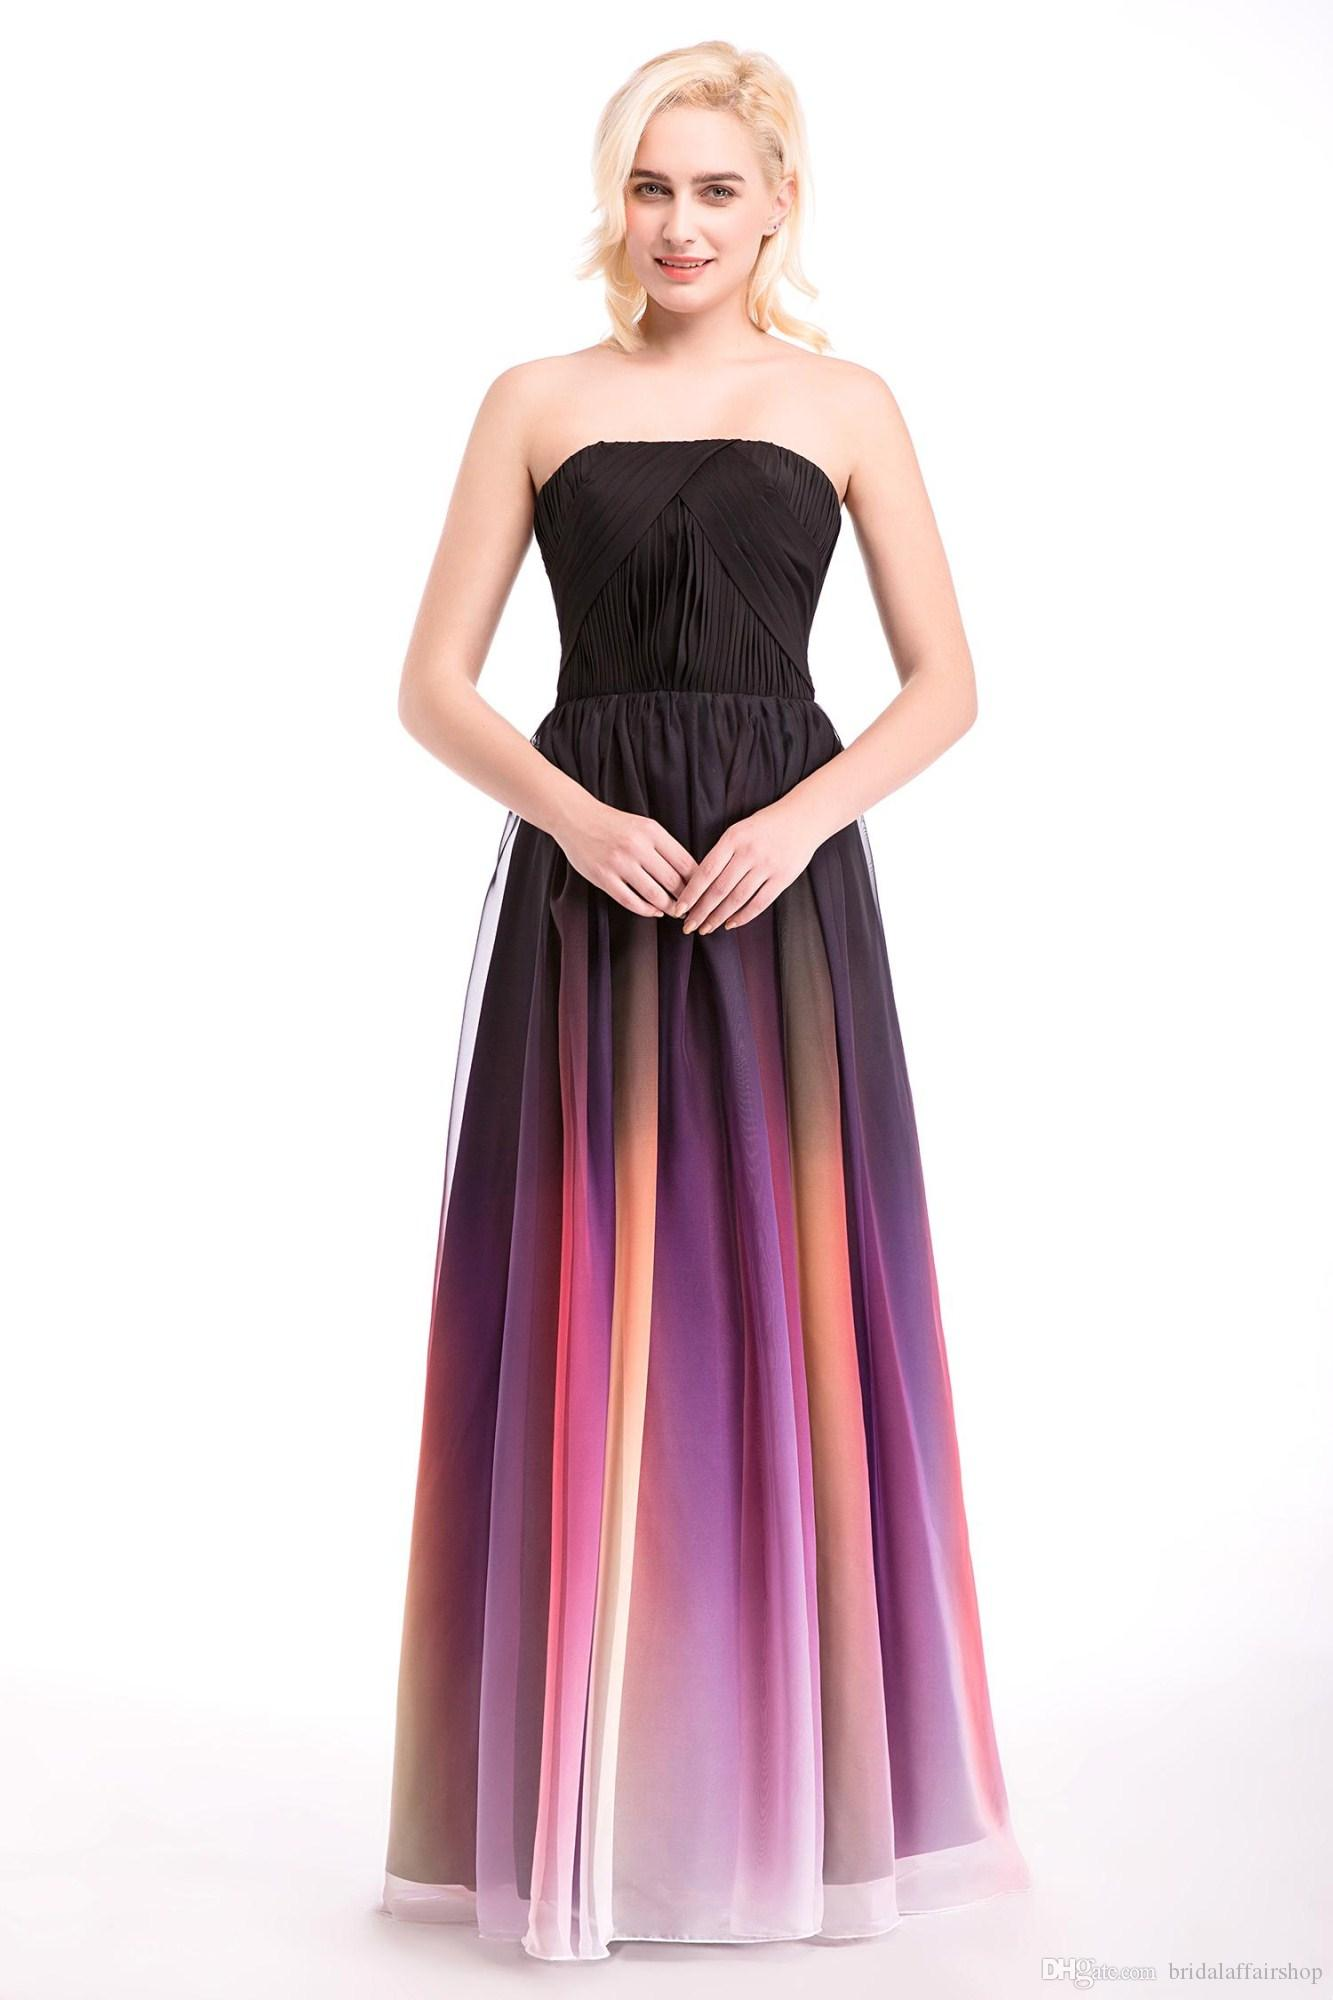 Floor Length A-Line Strapless Floor Length Chiffon Prom Dress Georgette Formal Evening Dress with Ruched Gowns